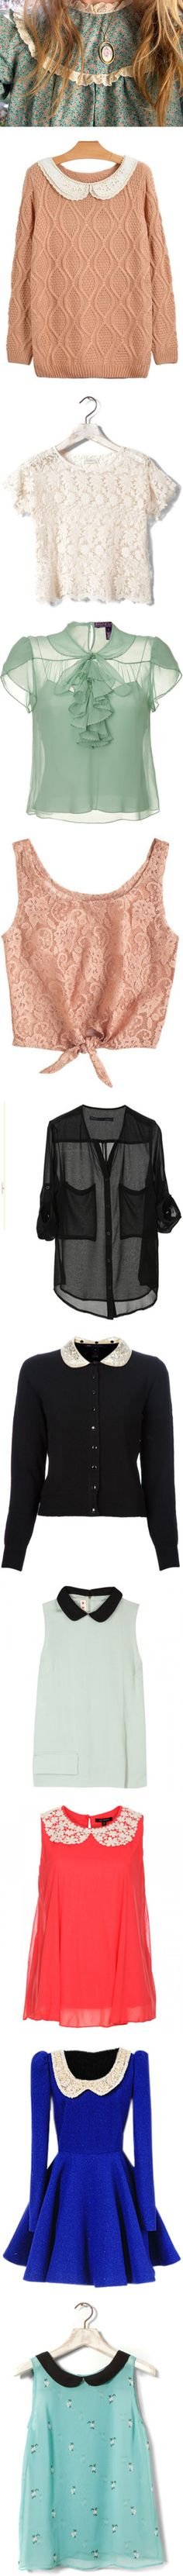 """""""♡Such Lovely Shirts ❤"""" by daisyrosvick ❤ liked on Polyvore"""